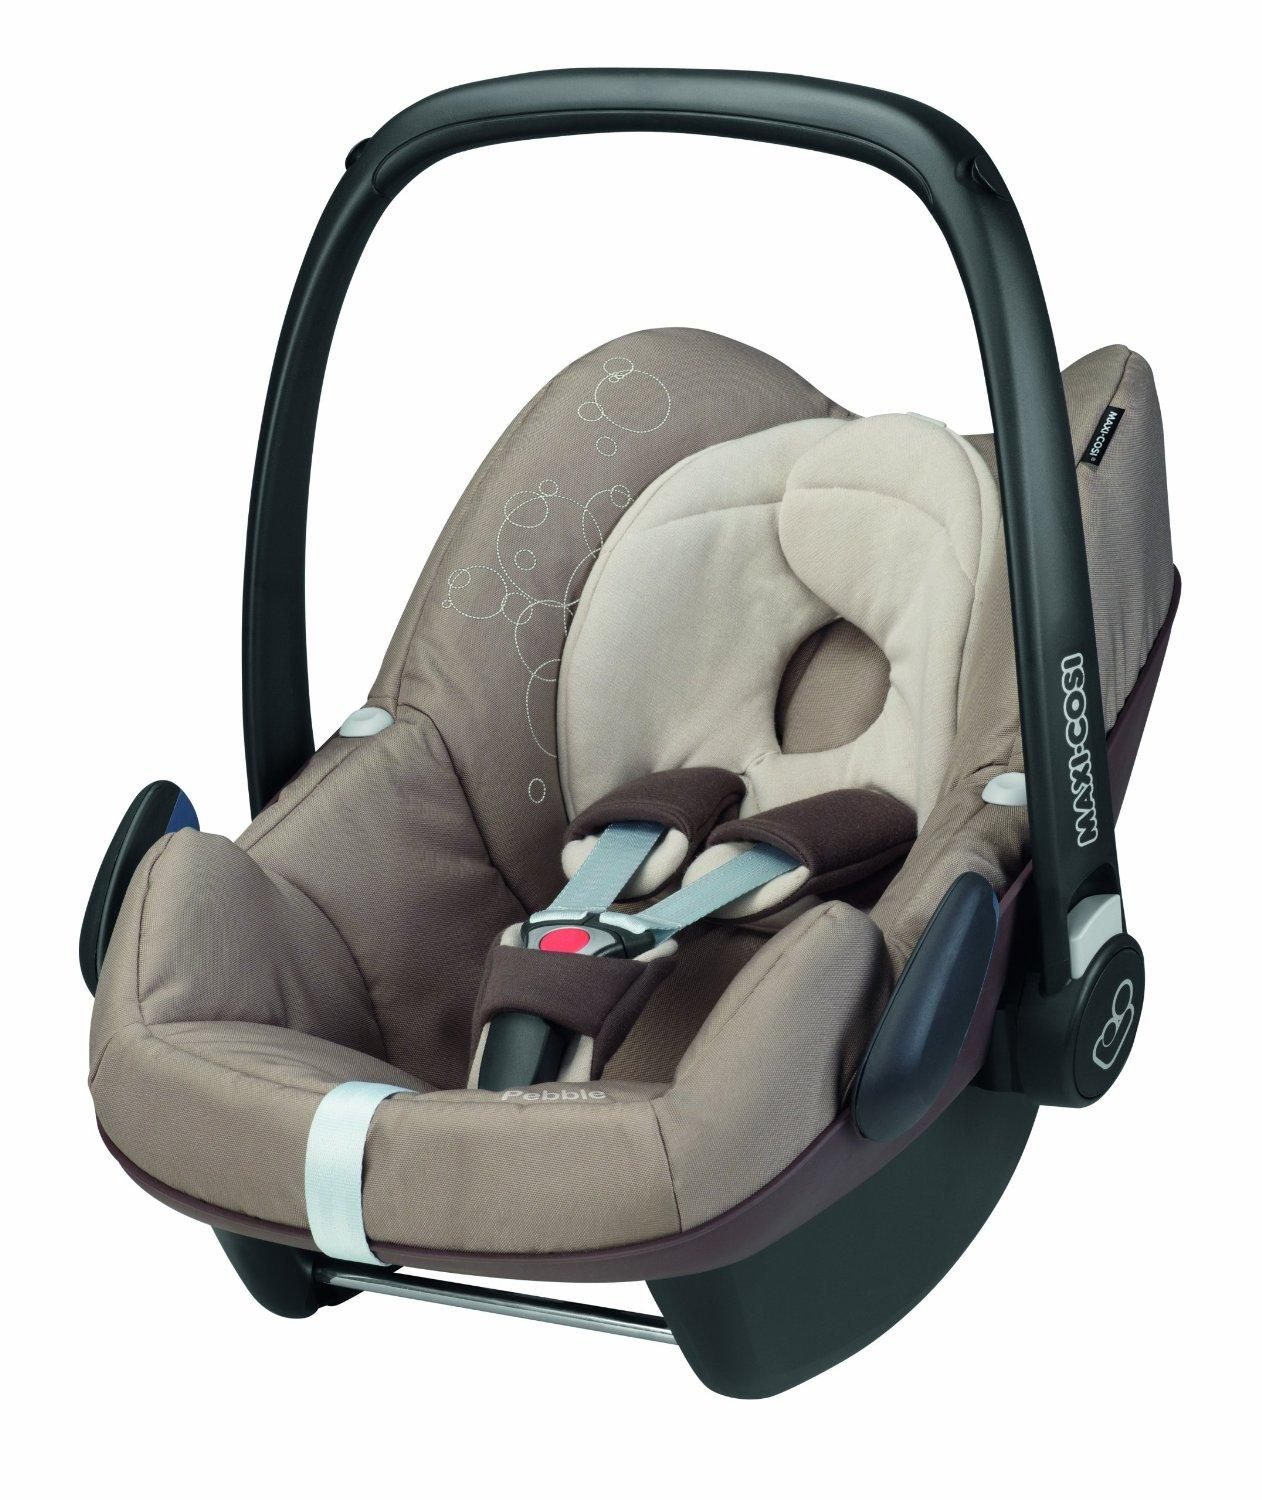 maxi cosi pebble group 0 car seat walnut brown baby. Black Bedroom Furniture Sets. Home Design Ideas